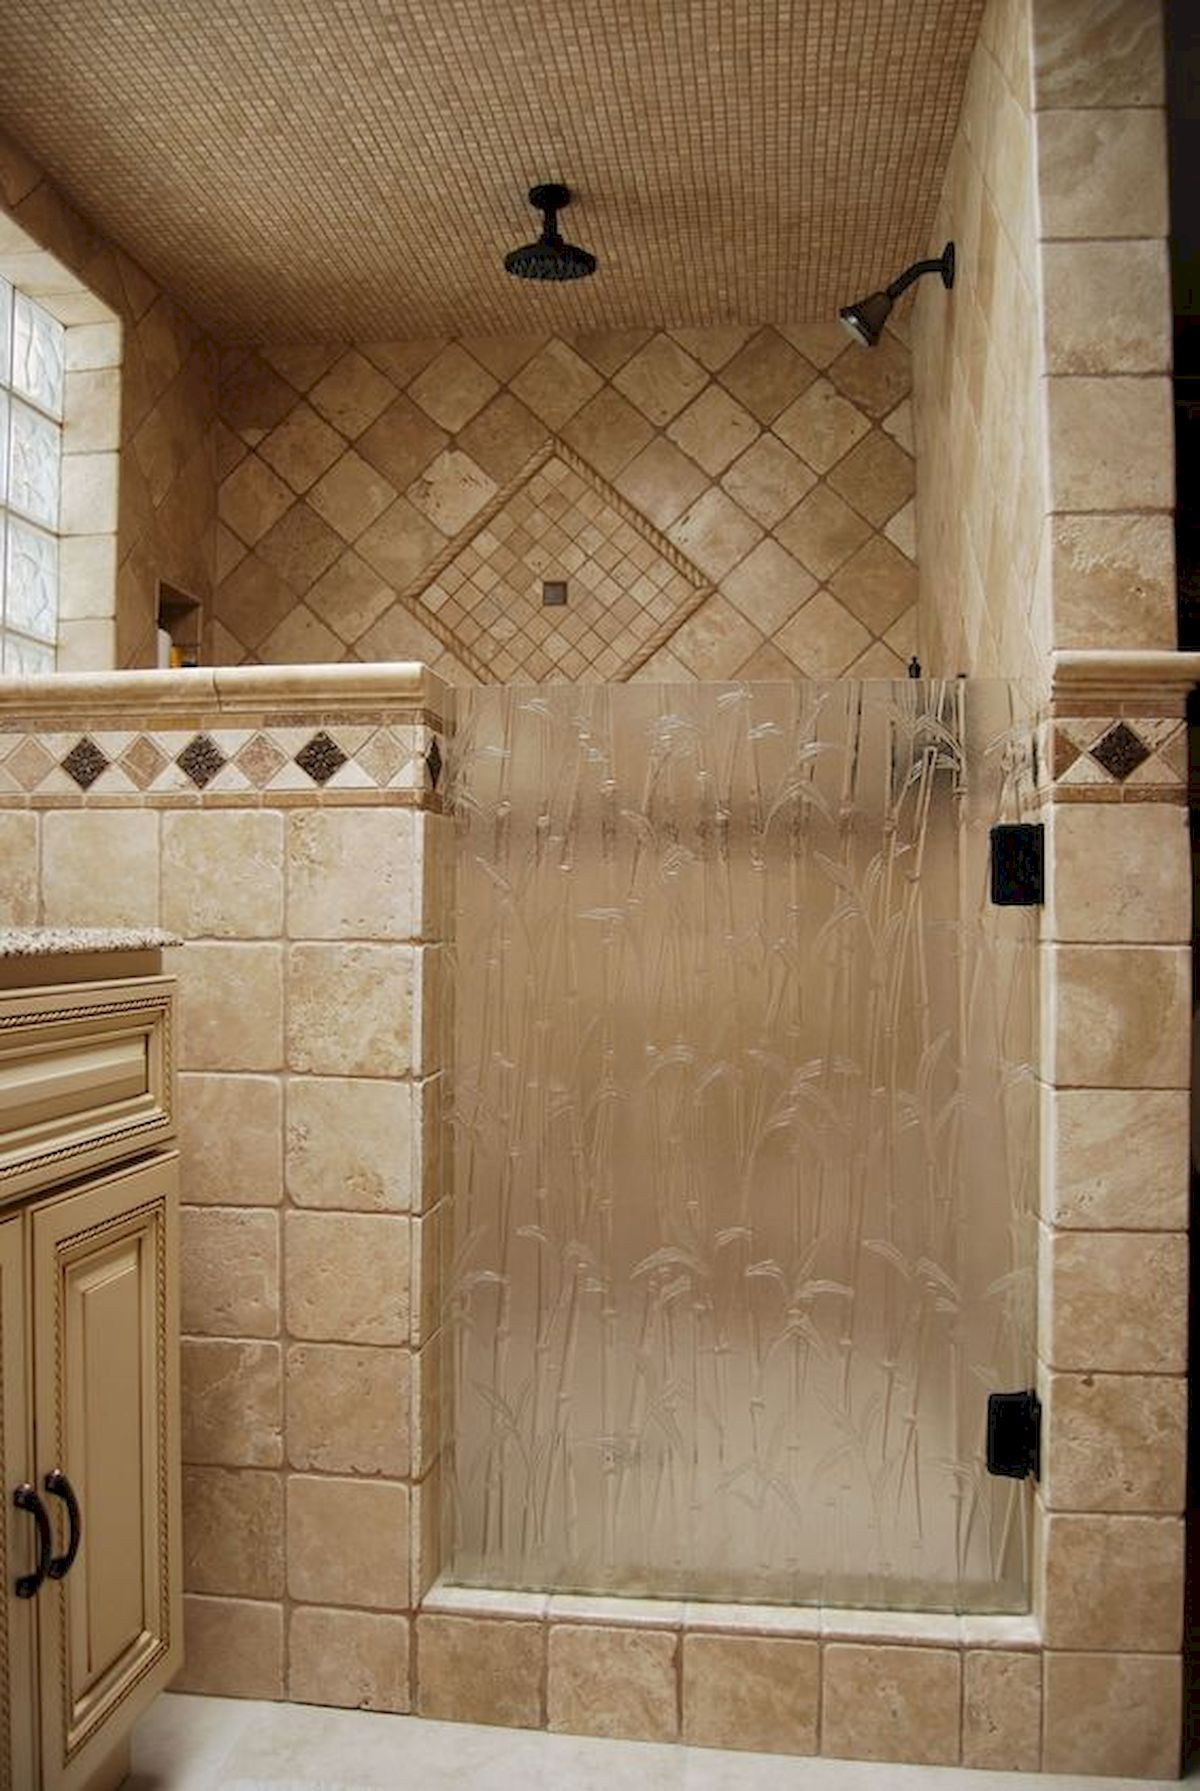 46 Fantastic Walk In Shower No Door for Bathroom Ideas 25